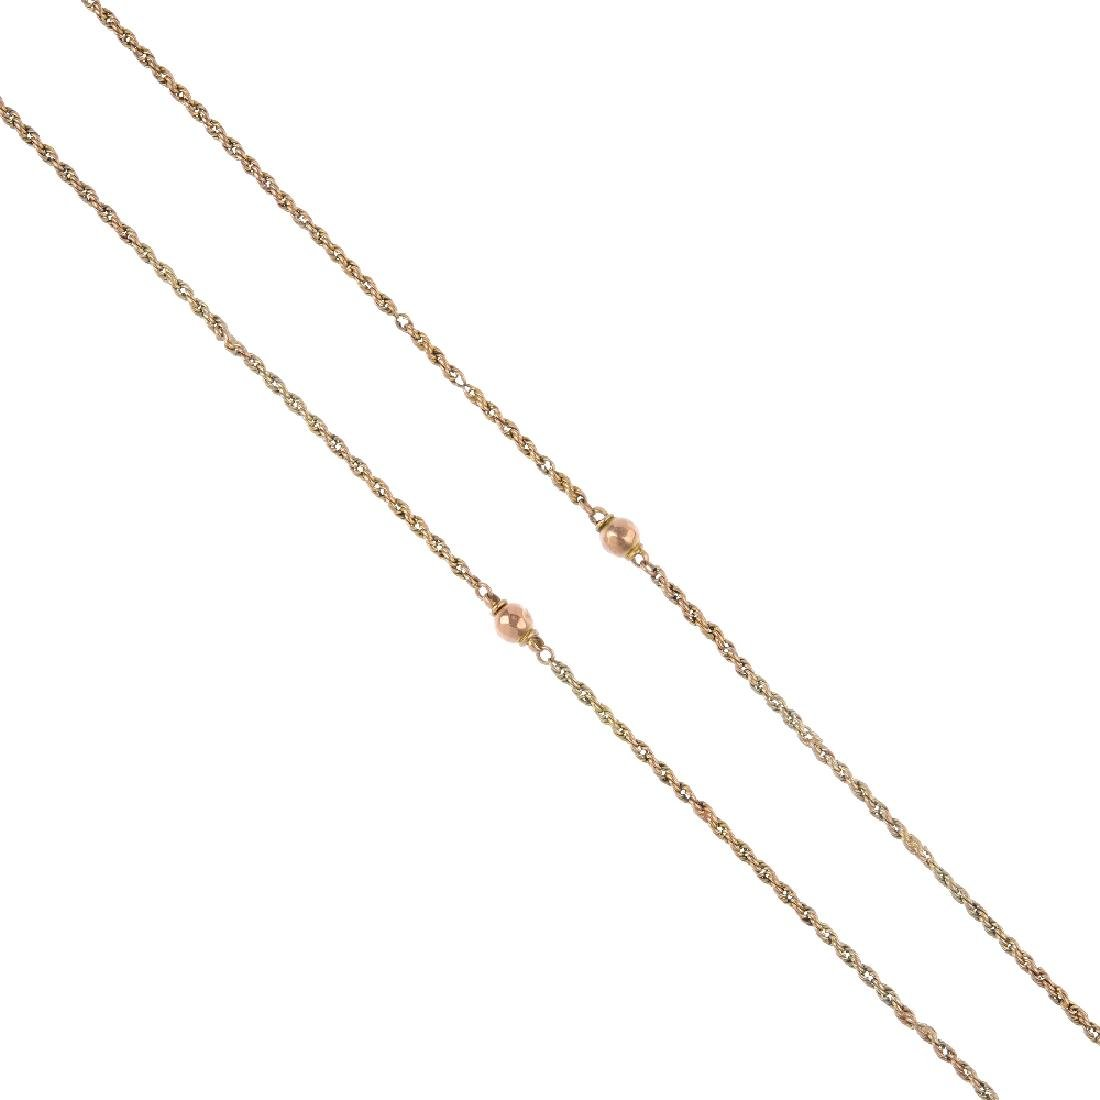 A longard chain. The rope-twist chain, with faceted